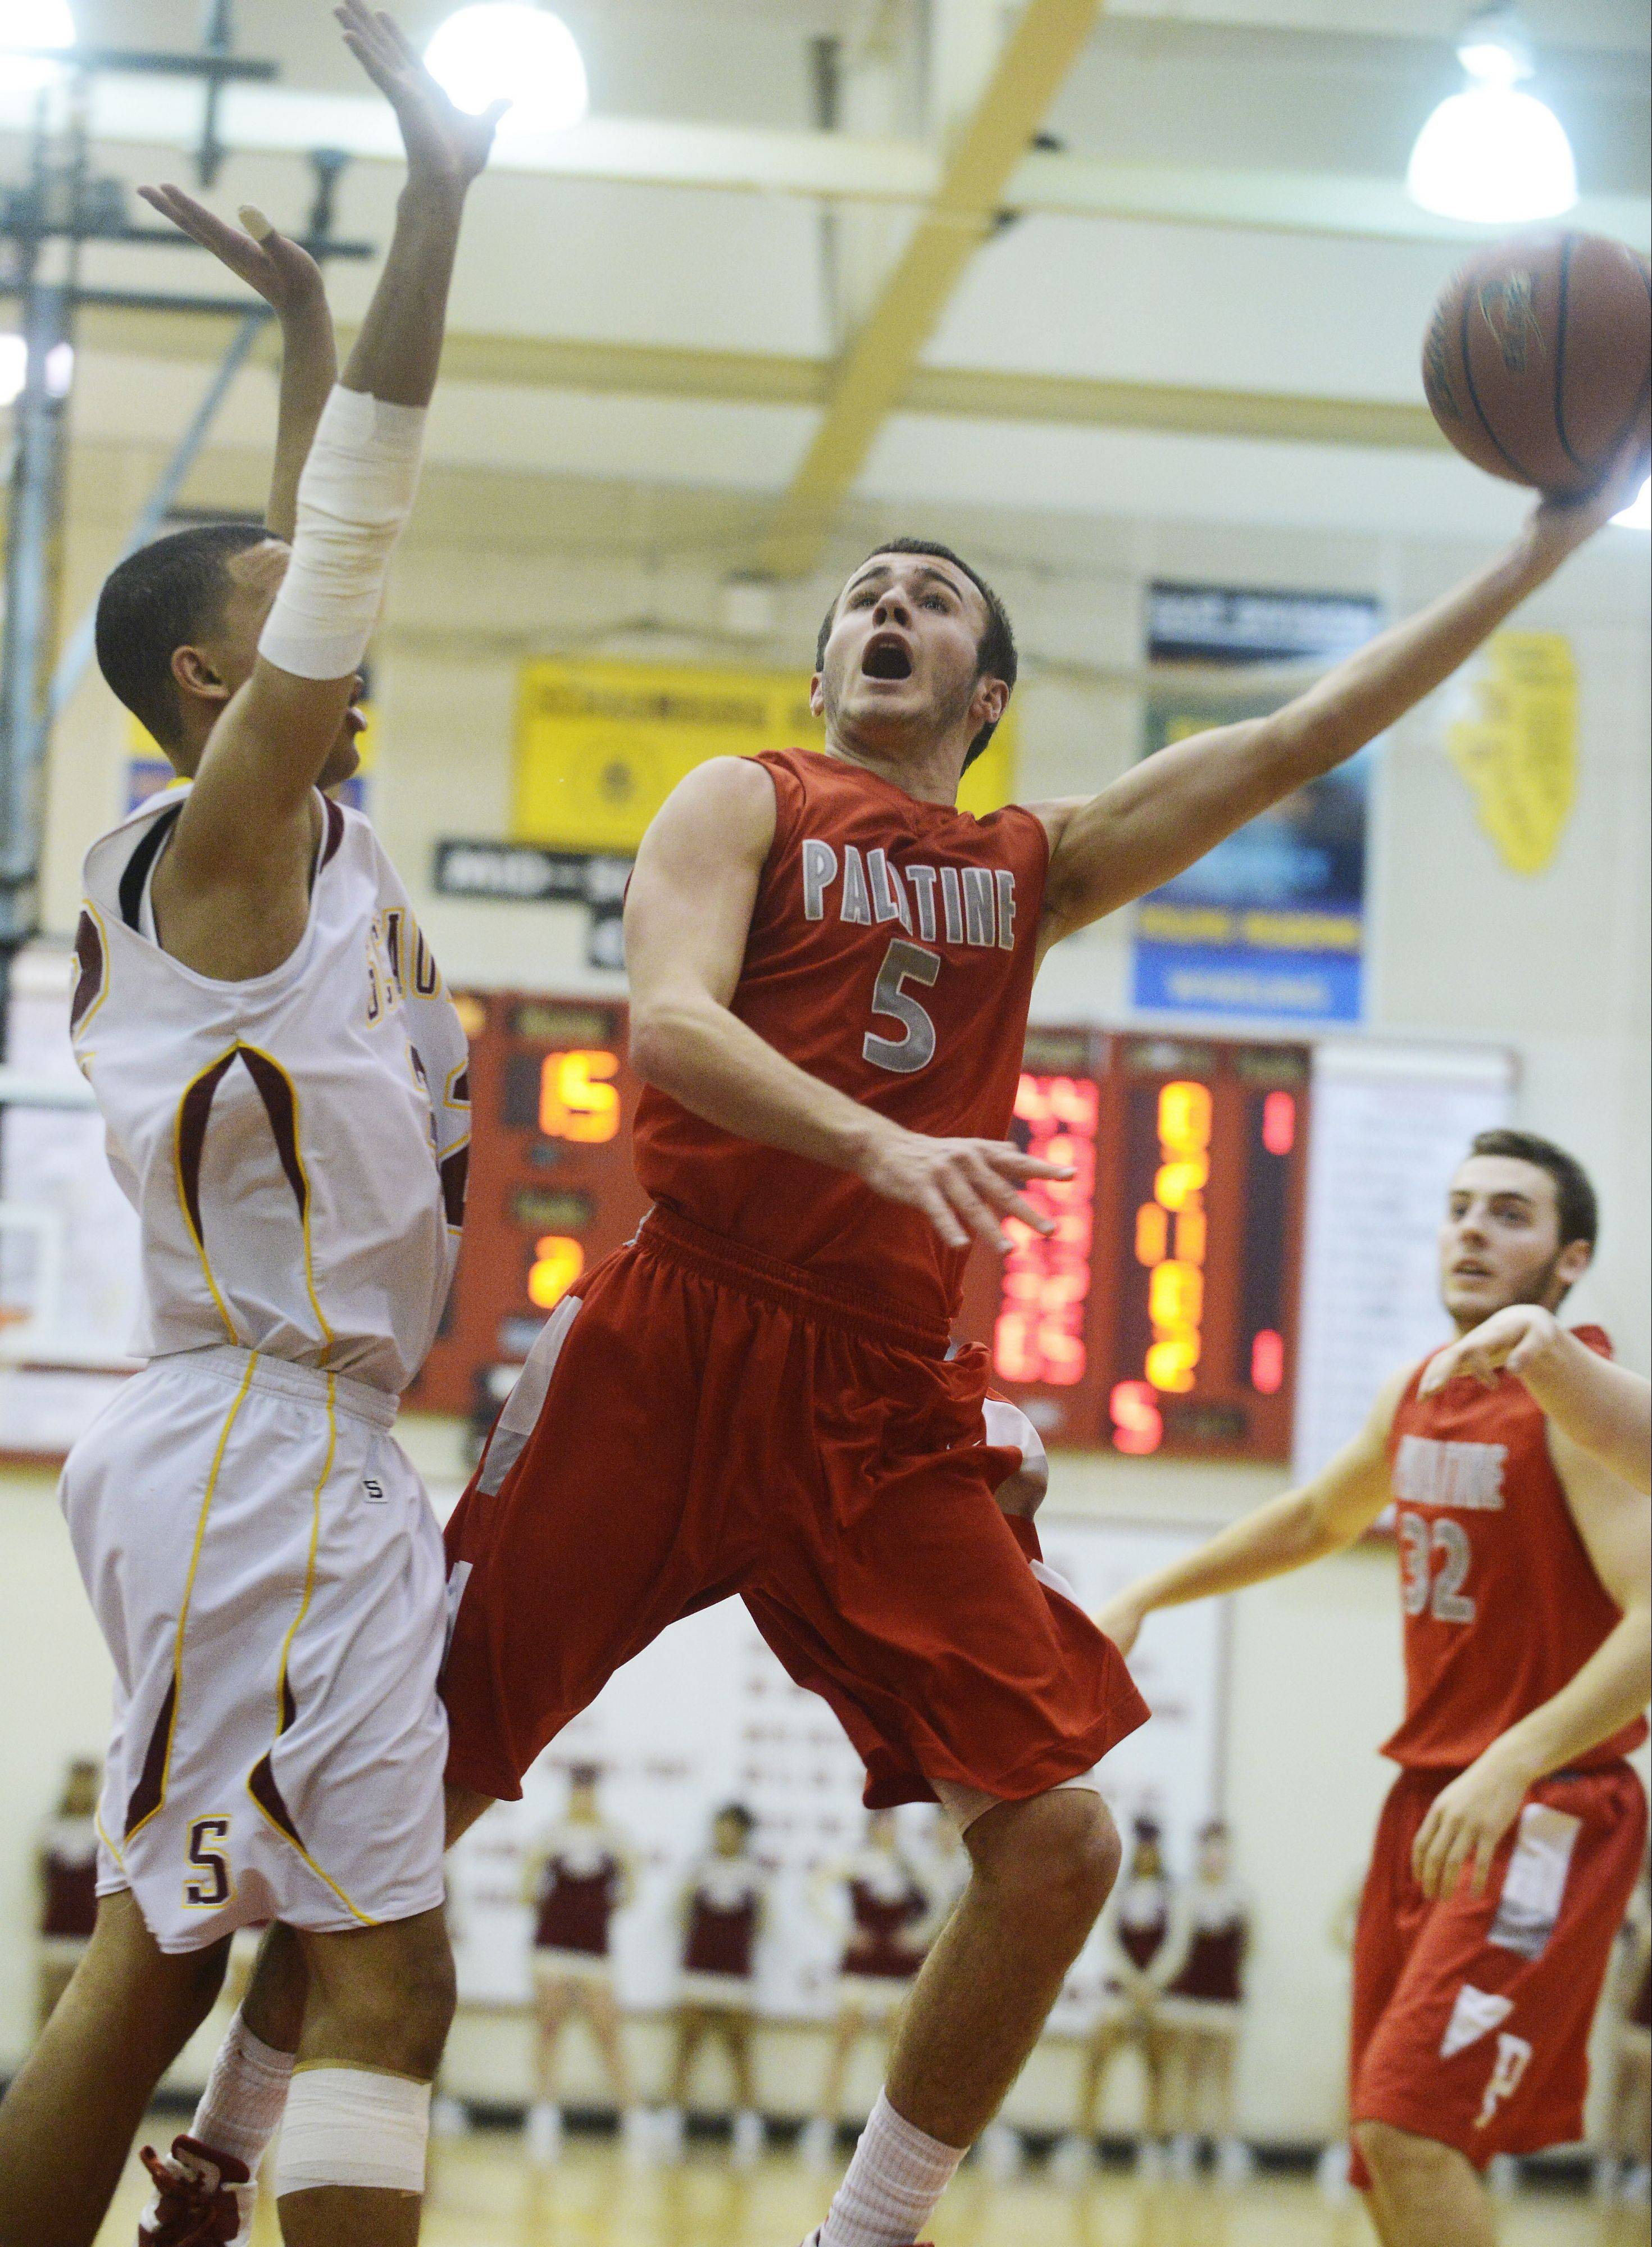 Palatine point guard Chris Macahon gets to the basket for a layup against Schaumburg last season.